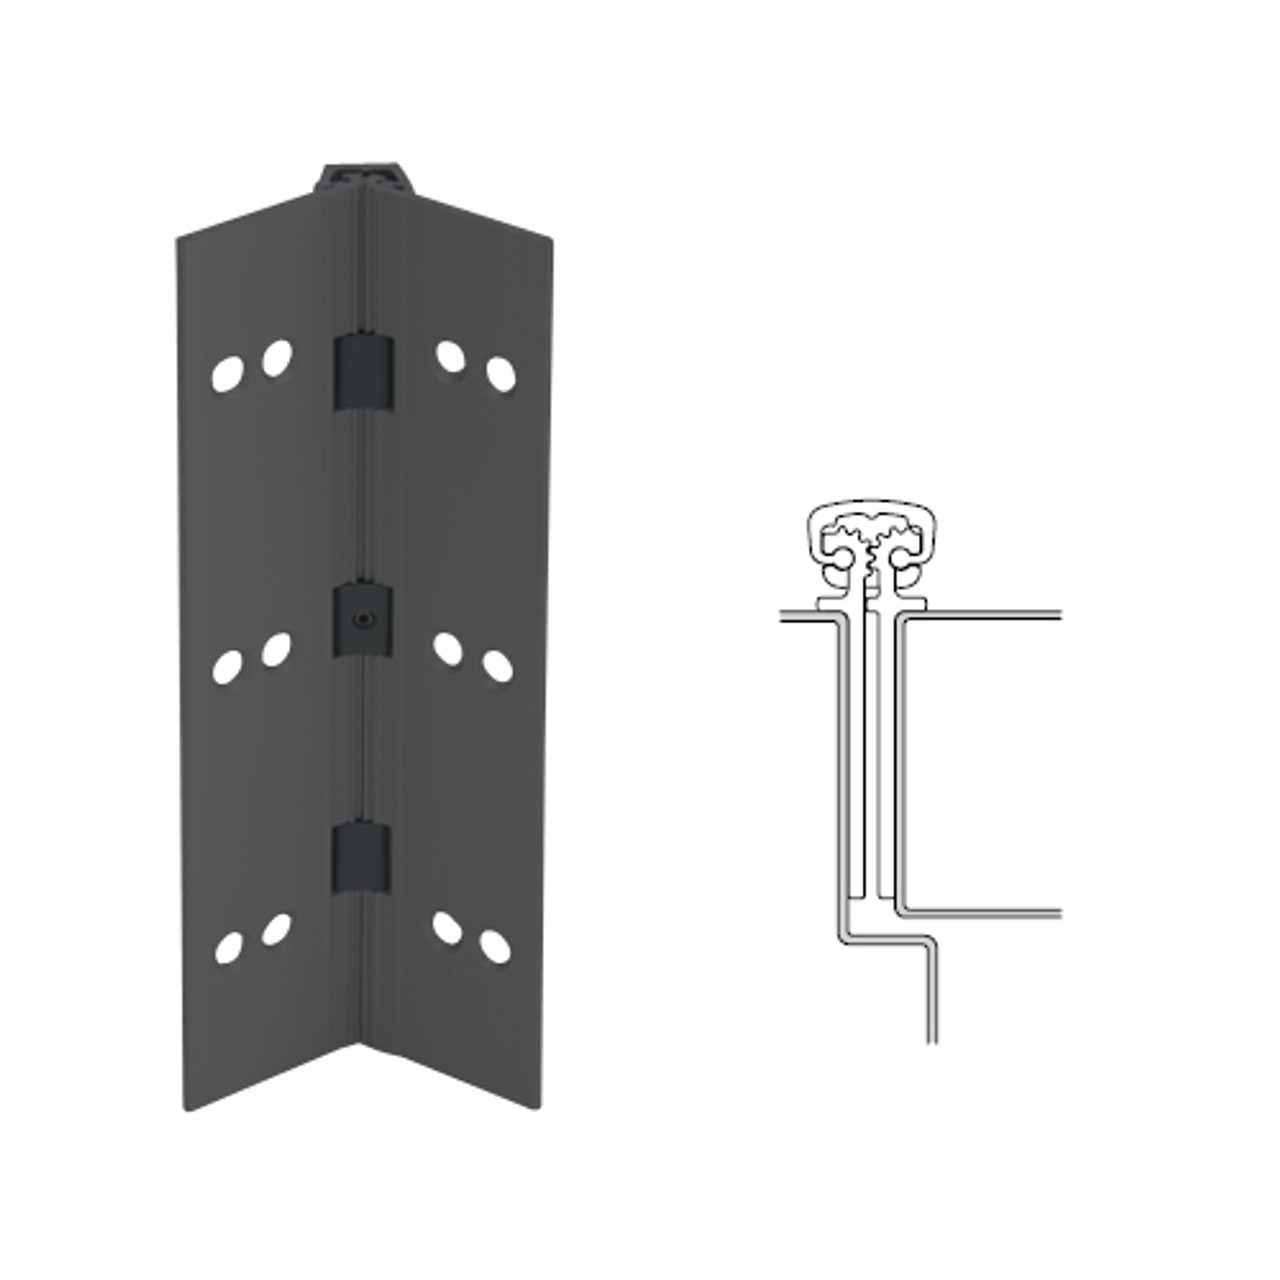 027XY-315AN-83-HT IVES Full Mortise Continuous Geared Hinges with Hospital Tip in Anodized Black